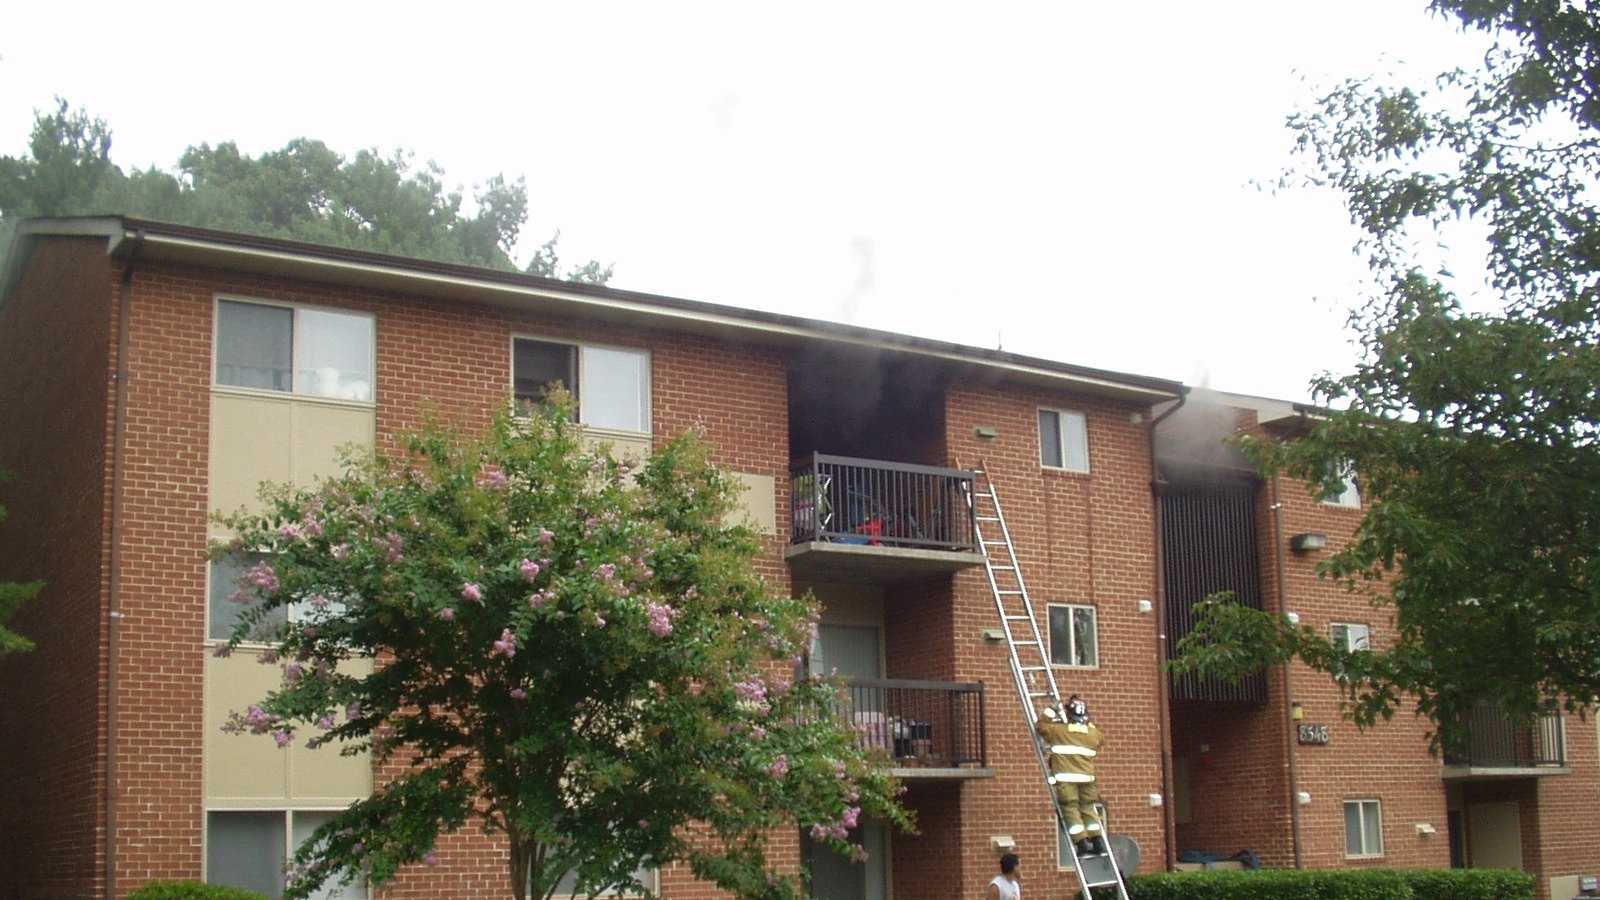 Apartment fire on Foxborough Drive in Savage image